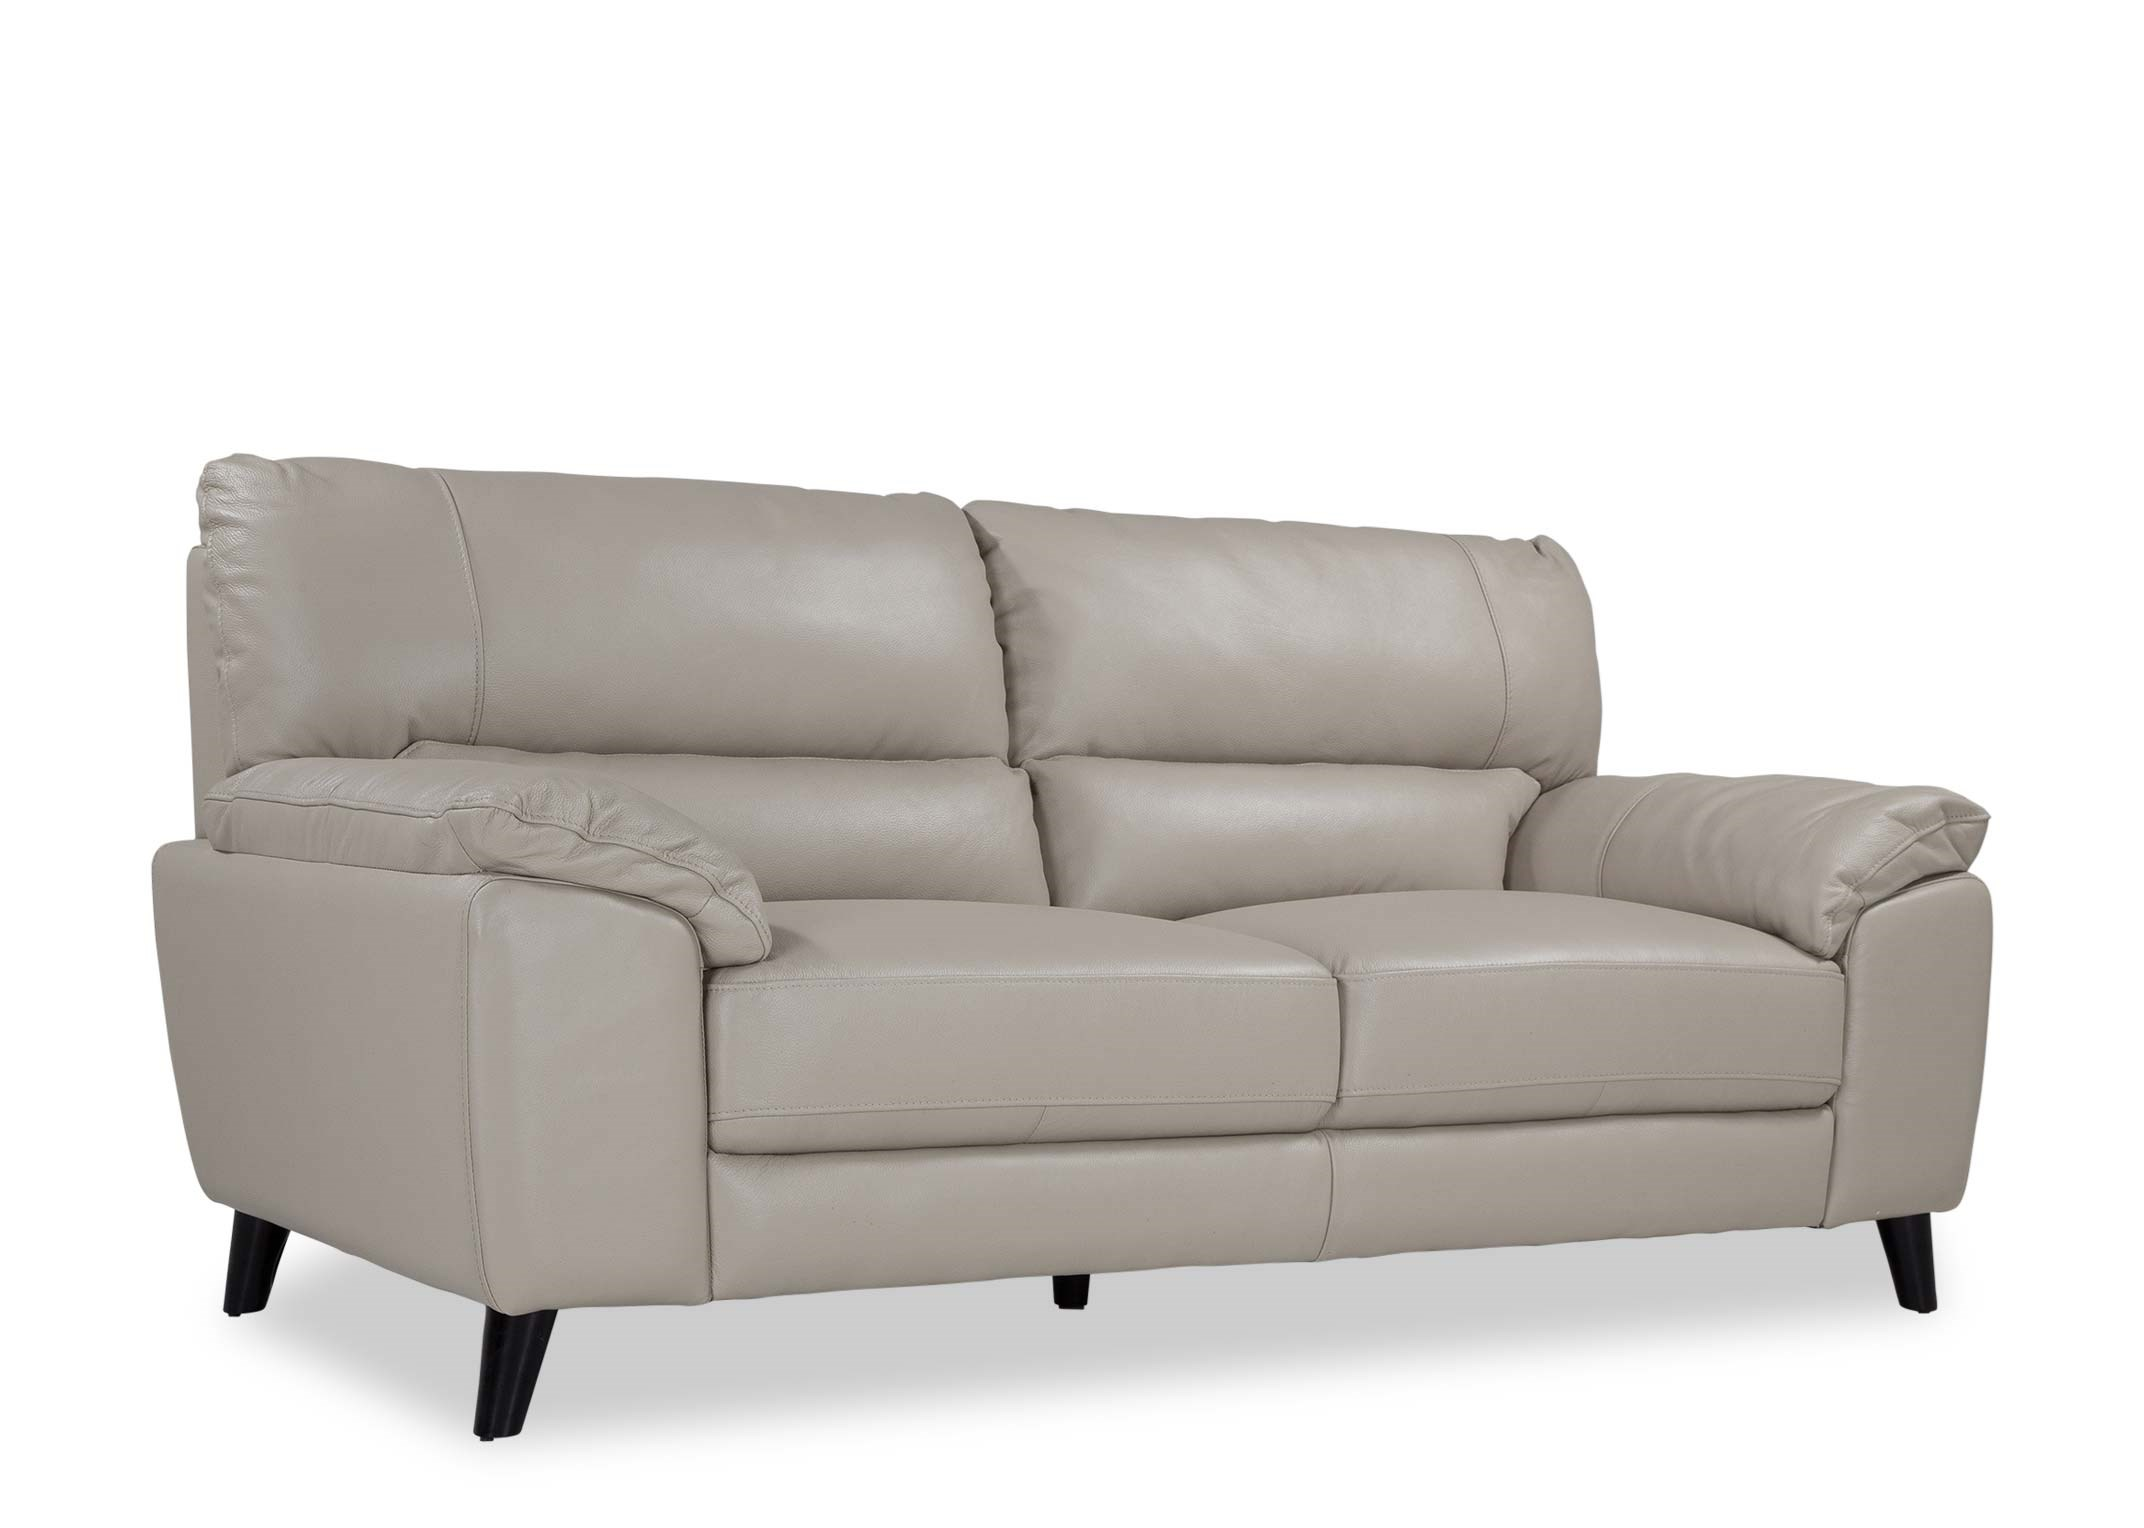 Light Grey Leather 3 Seater Sofa Alfredo Ez Living Furniture